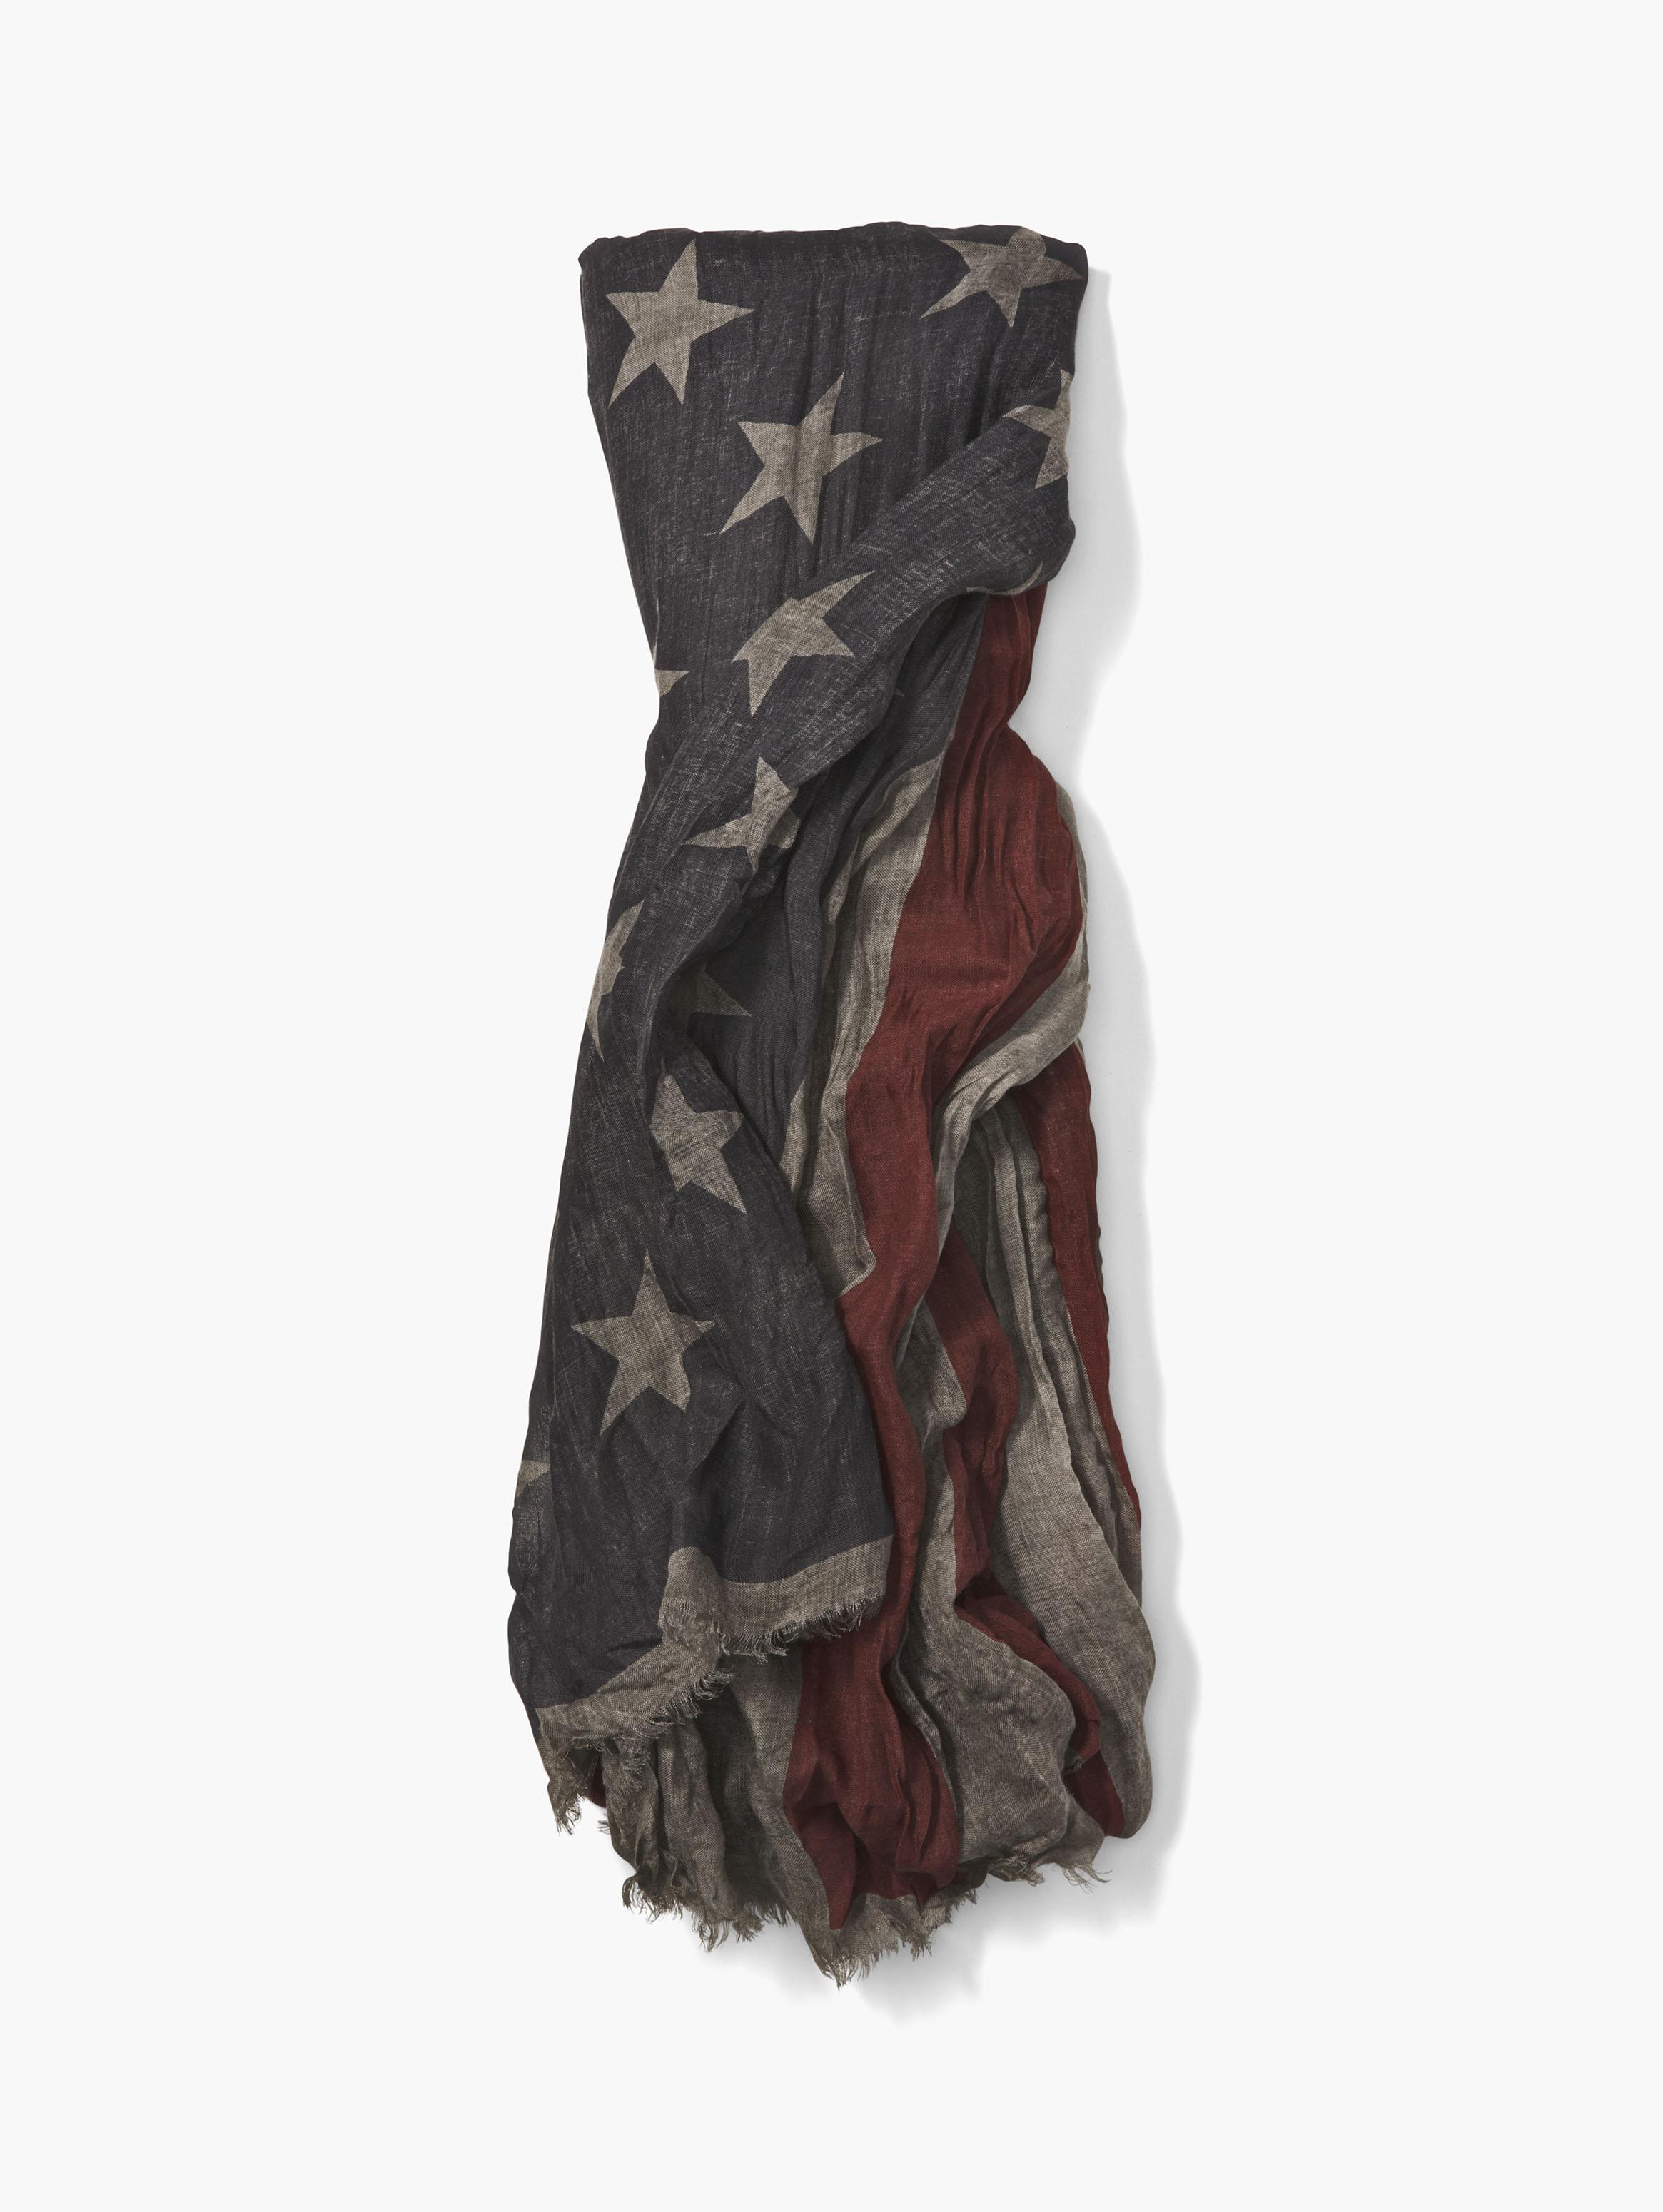 Antique Stars And Bars Scarf